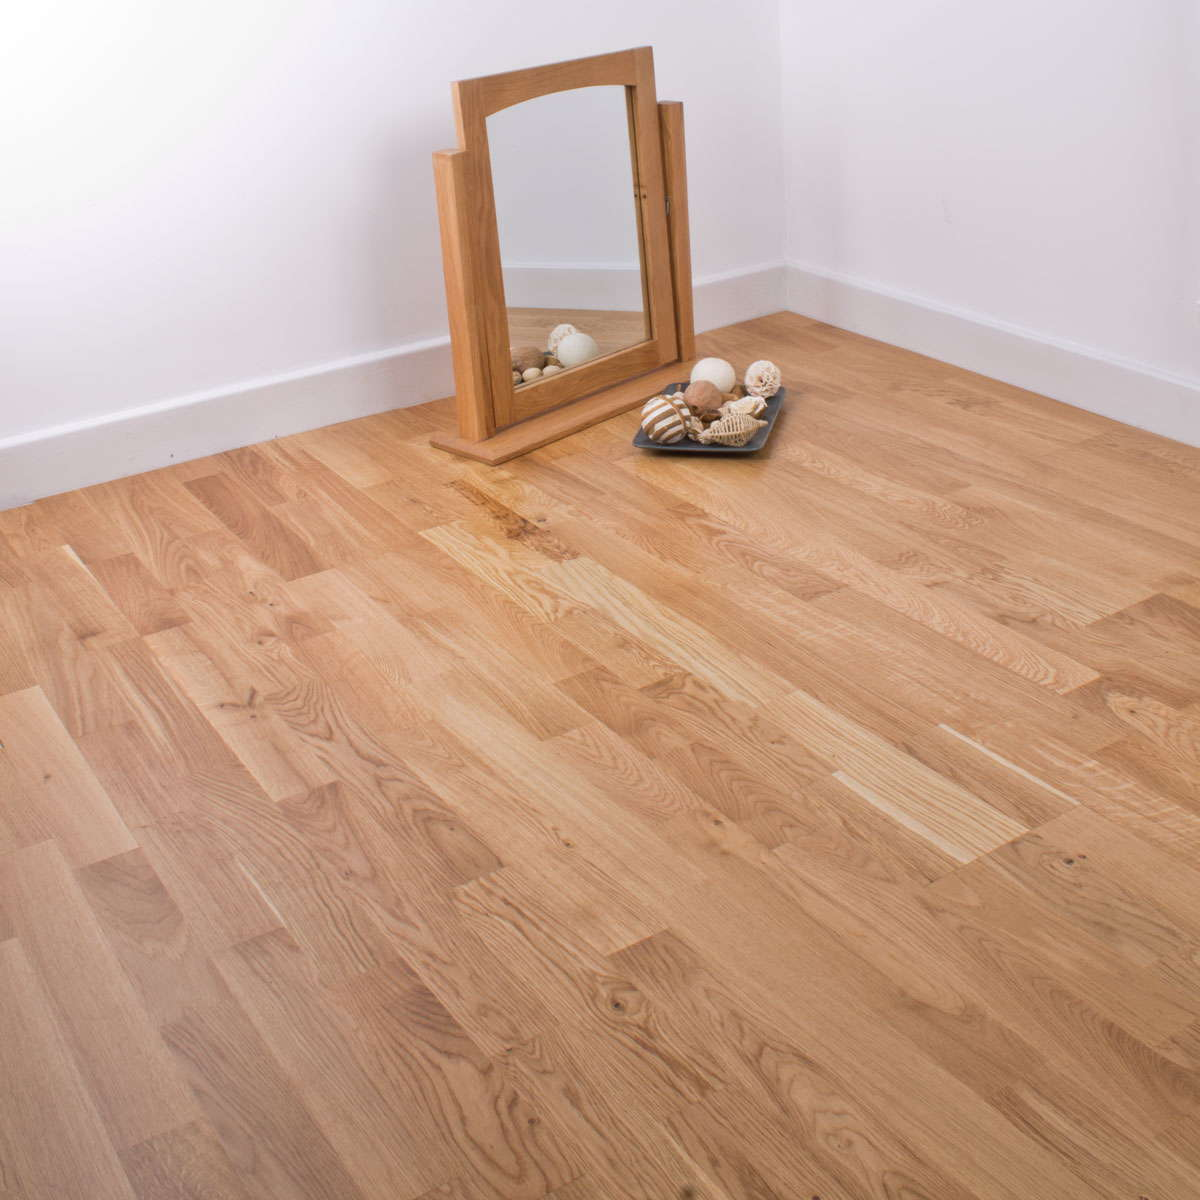 Image of: cool engineered wood floors ideas